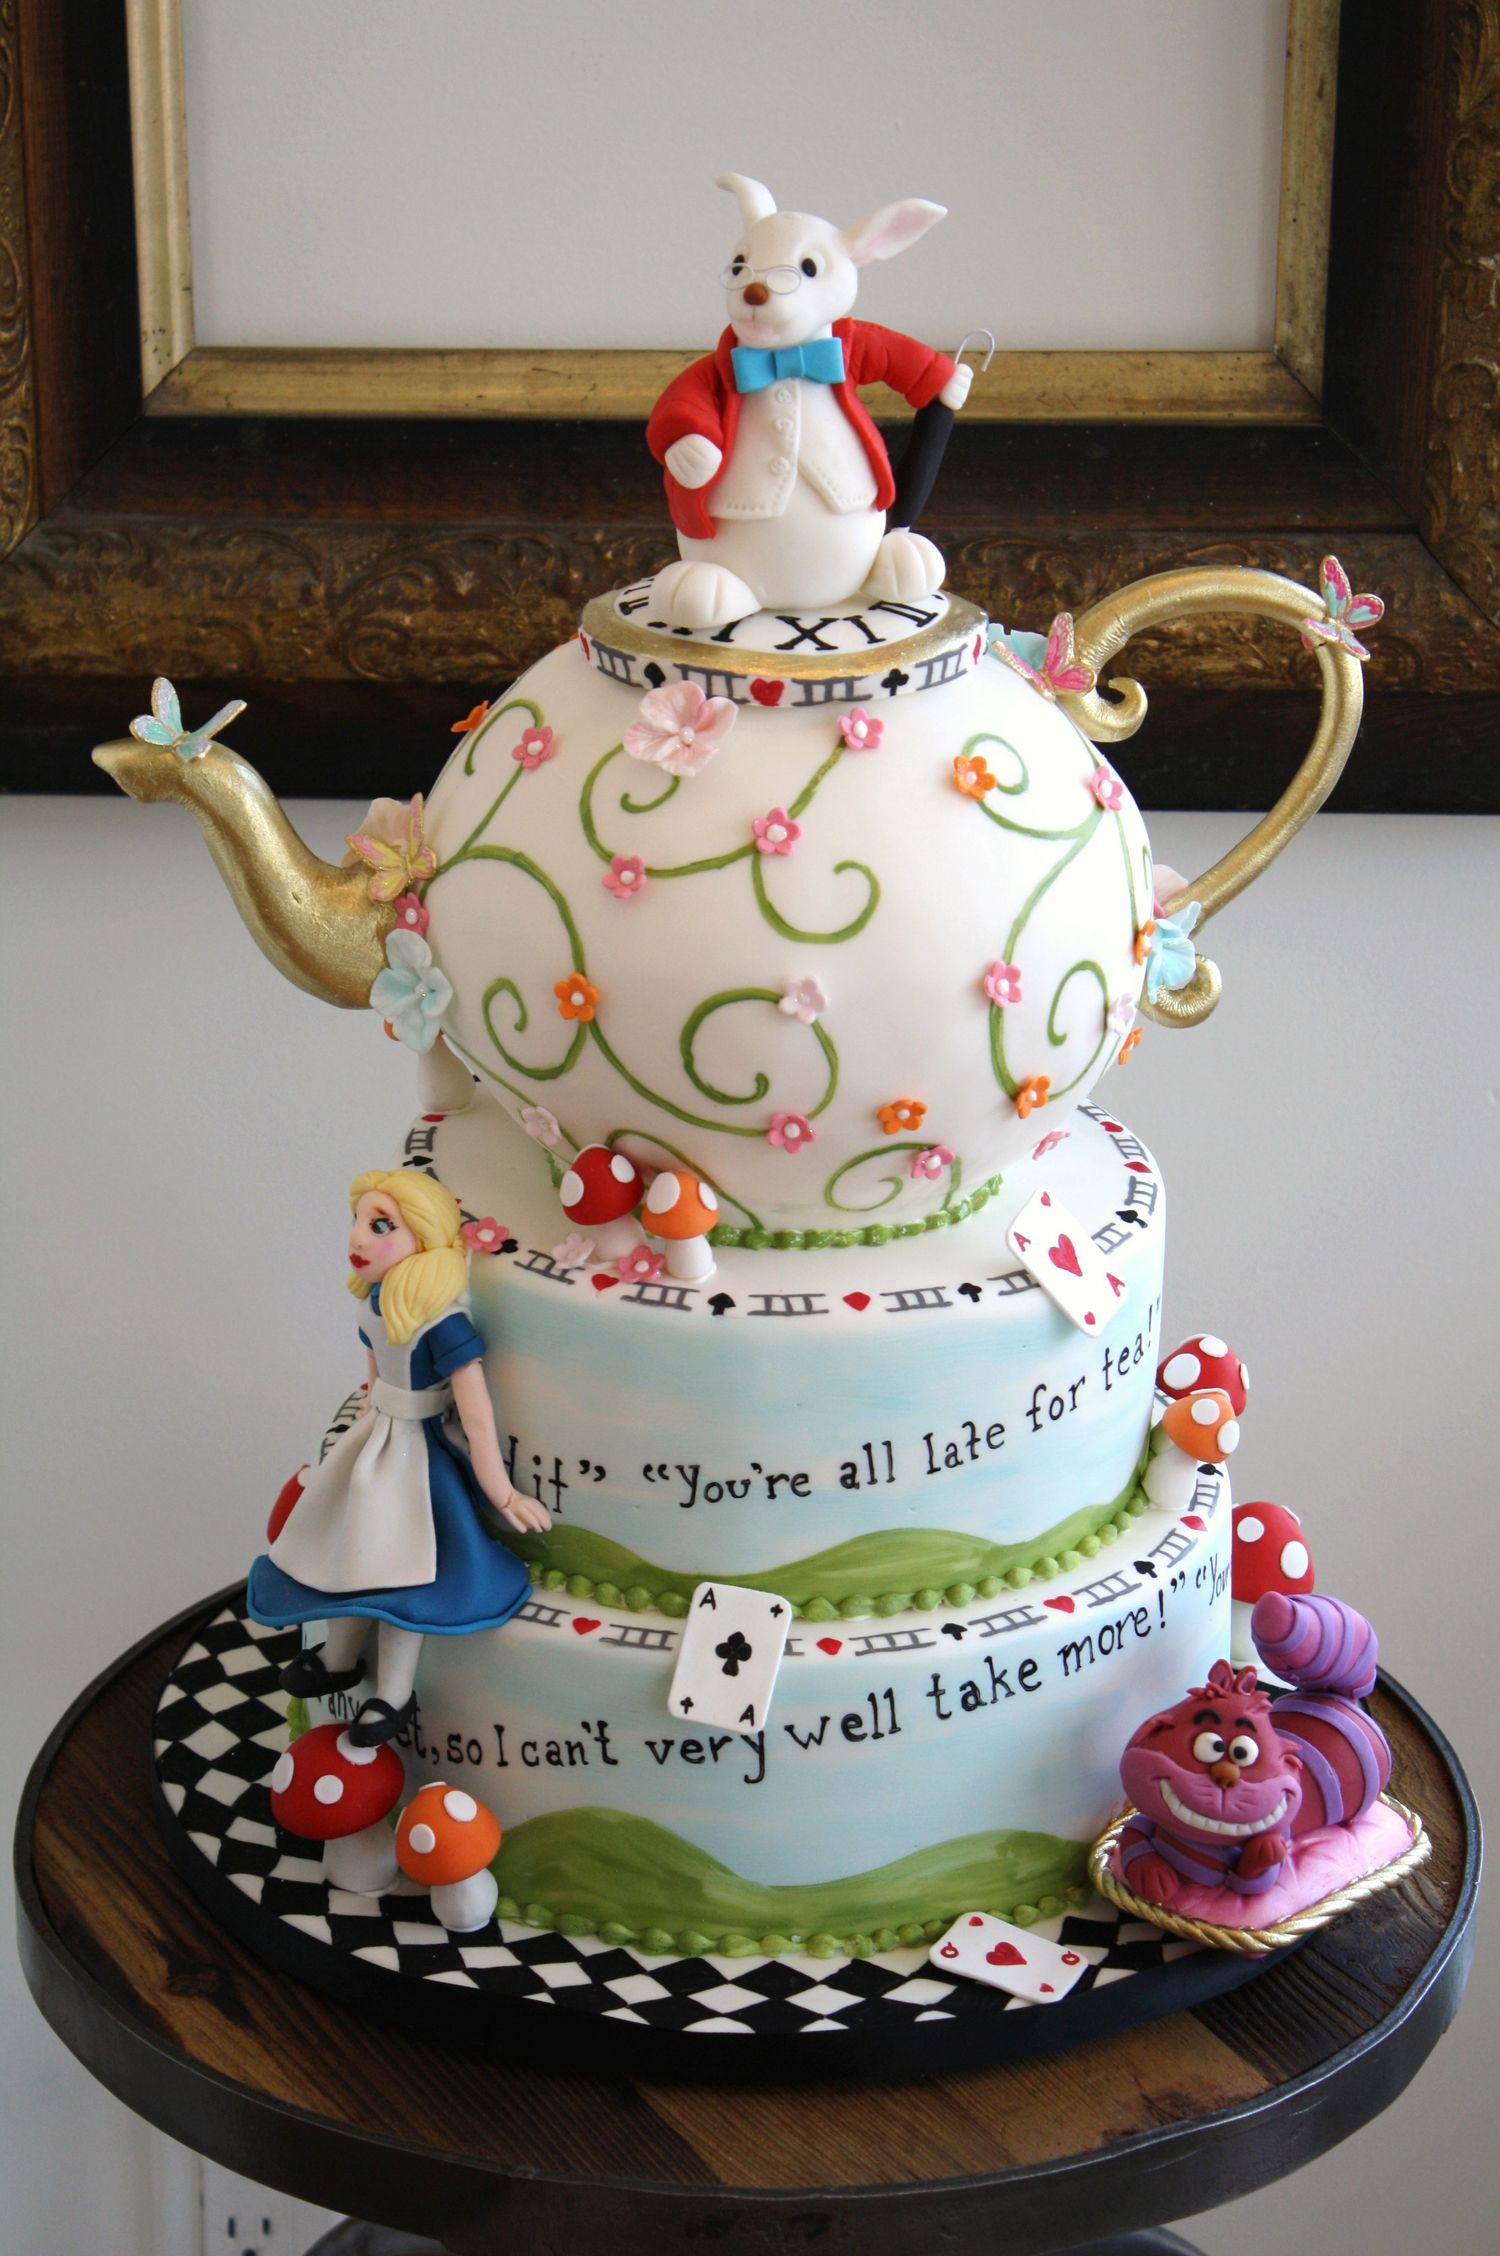 someday I would like to host a mad tea party and i will make this